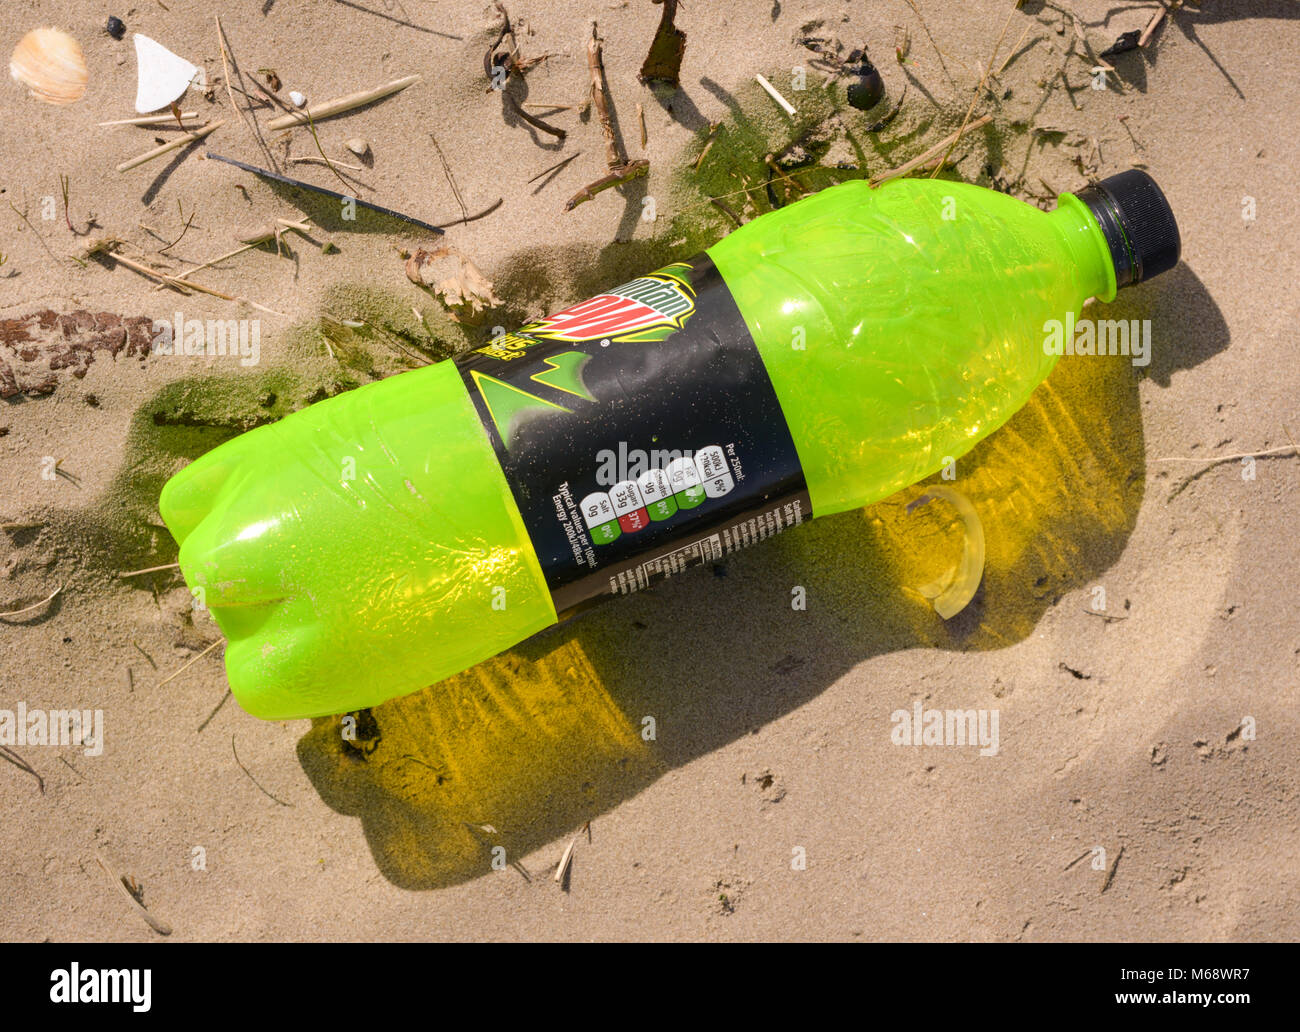 Detritus and rubbish washed up on Cefn Sidan, Pembrey, Carmarthenshire. Wales. UK. - Stock Image